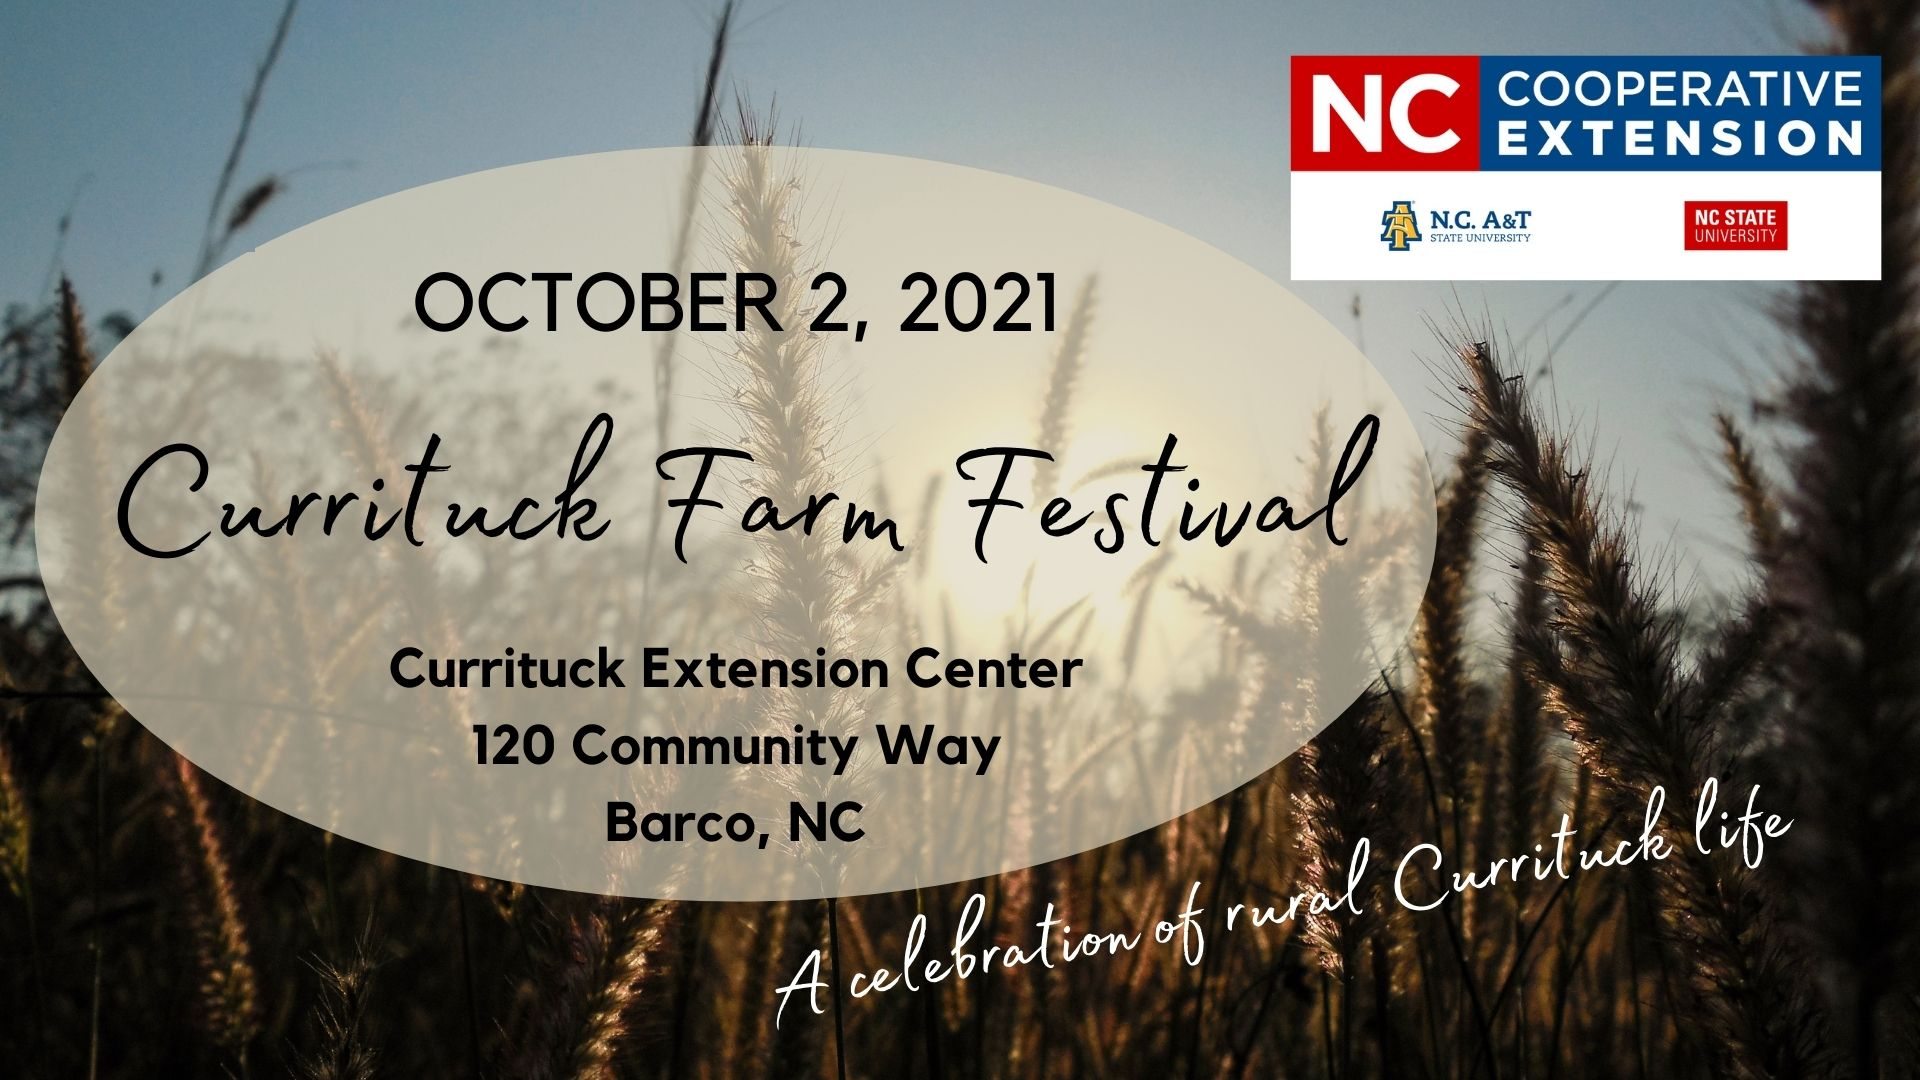 wheat field in background with words advertising Currituck Farm Festival and logos